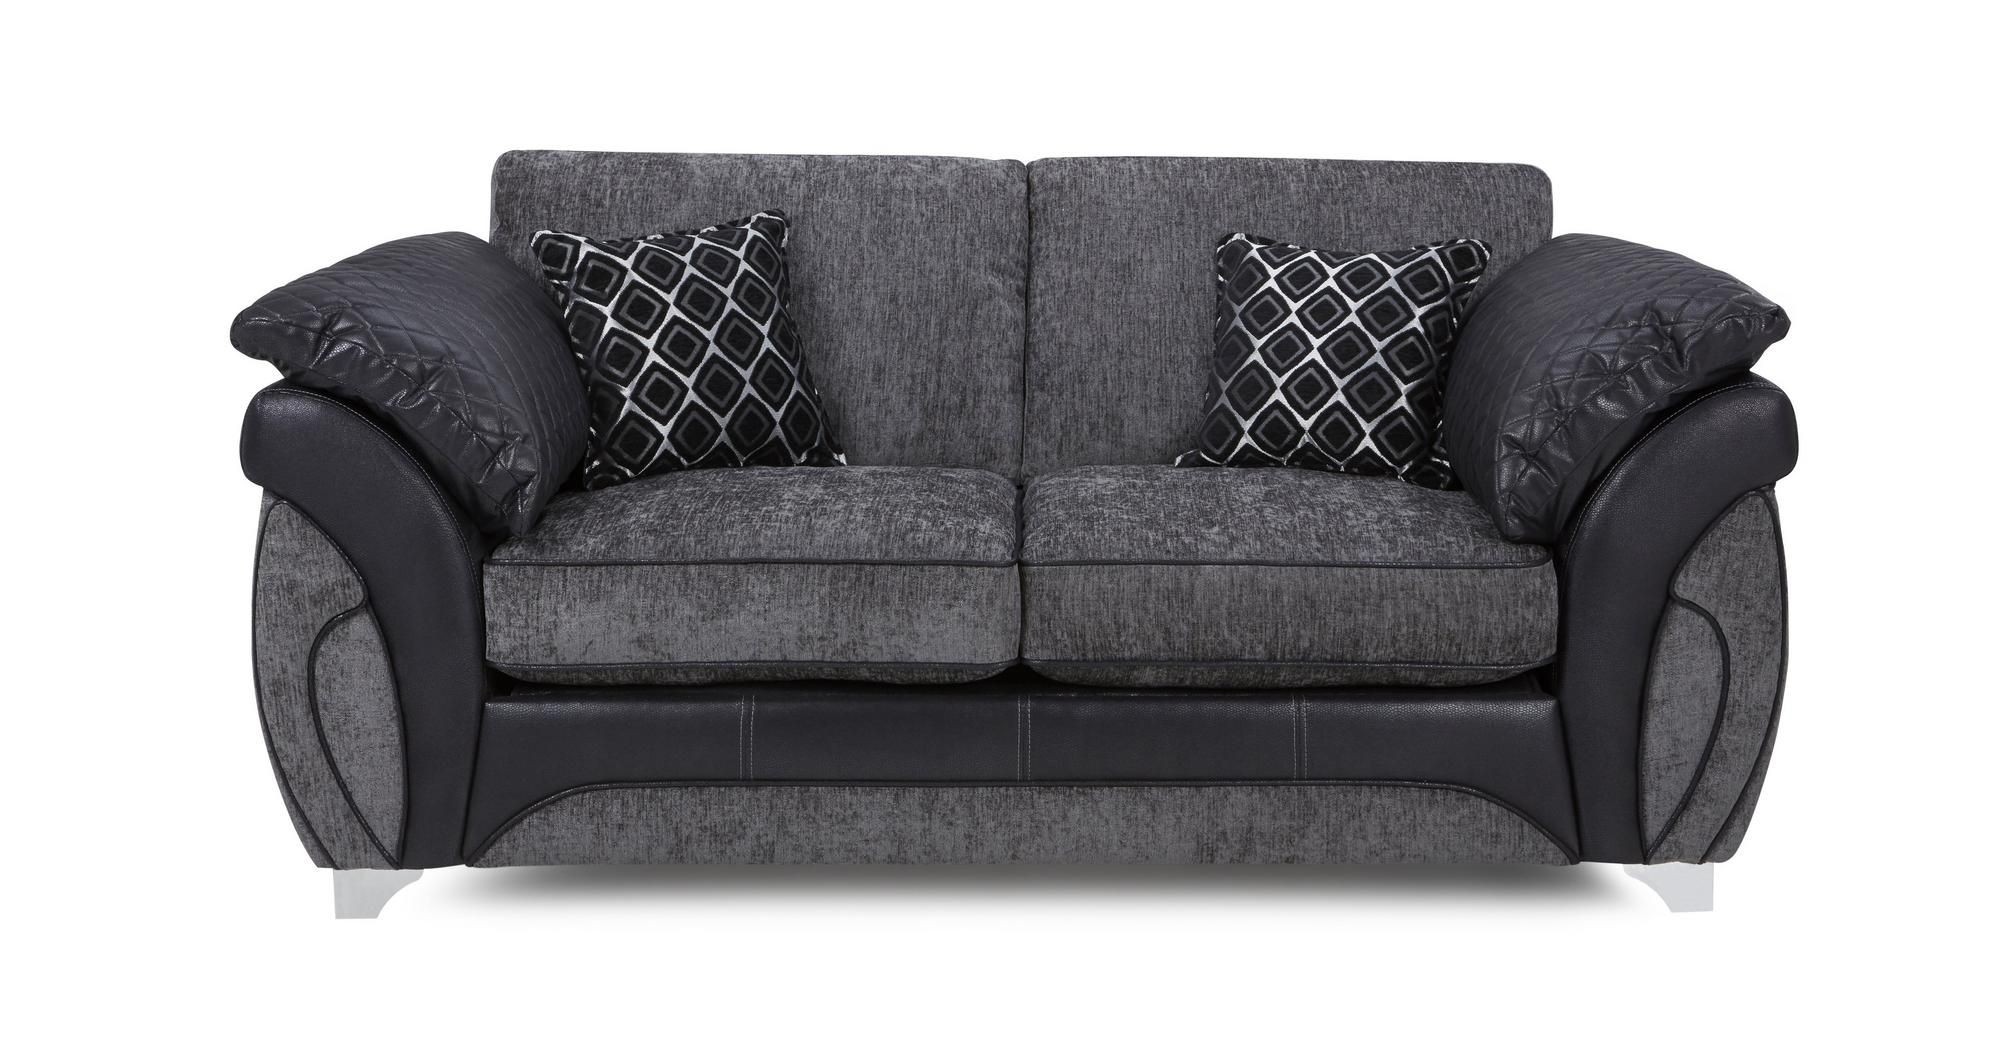 Dfs Luna Charcoal Black Fabric Large 2 Seater Deluxe Sofa